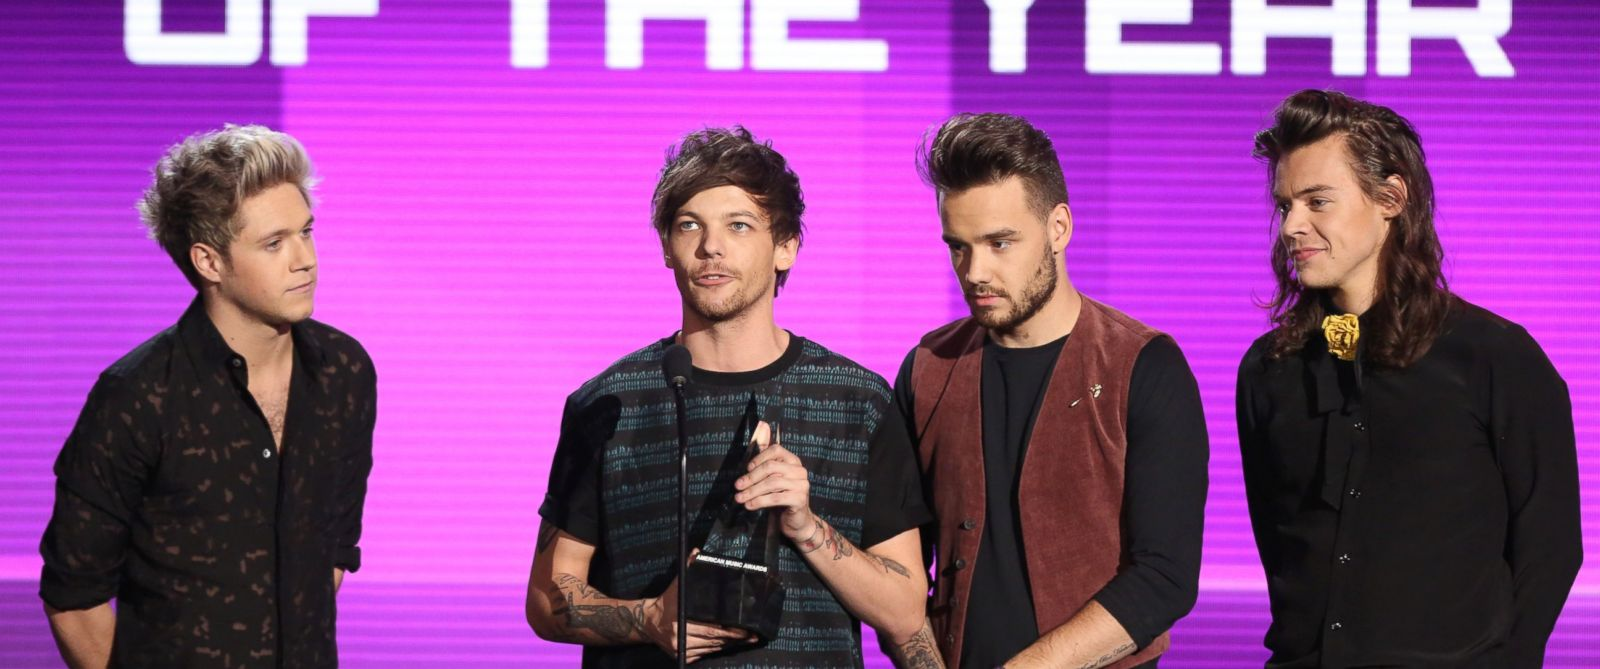 Image result for 2016 AMERican music award winners